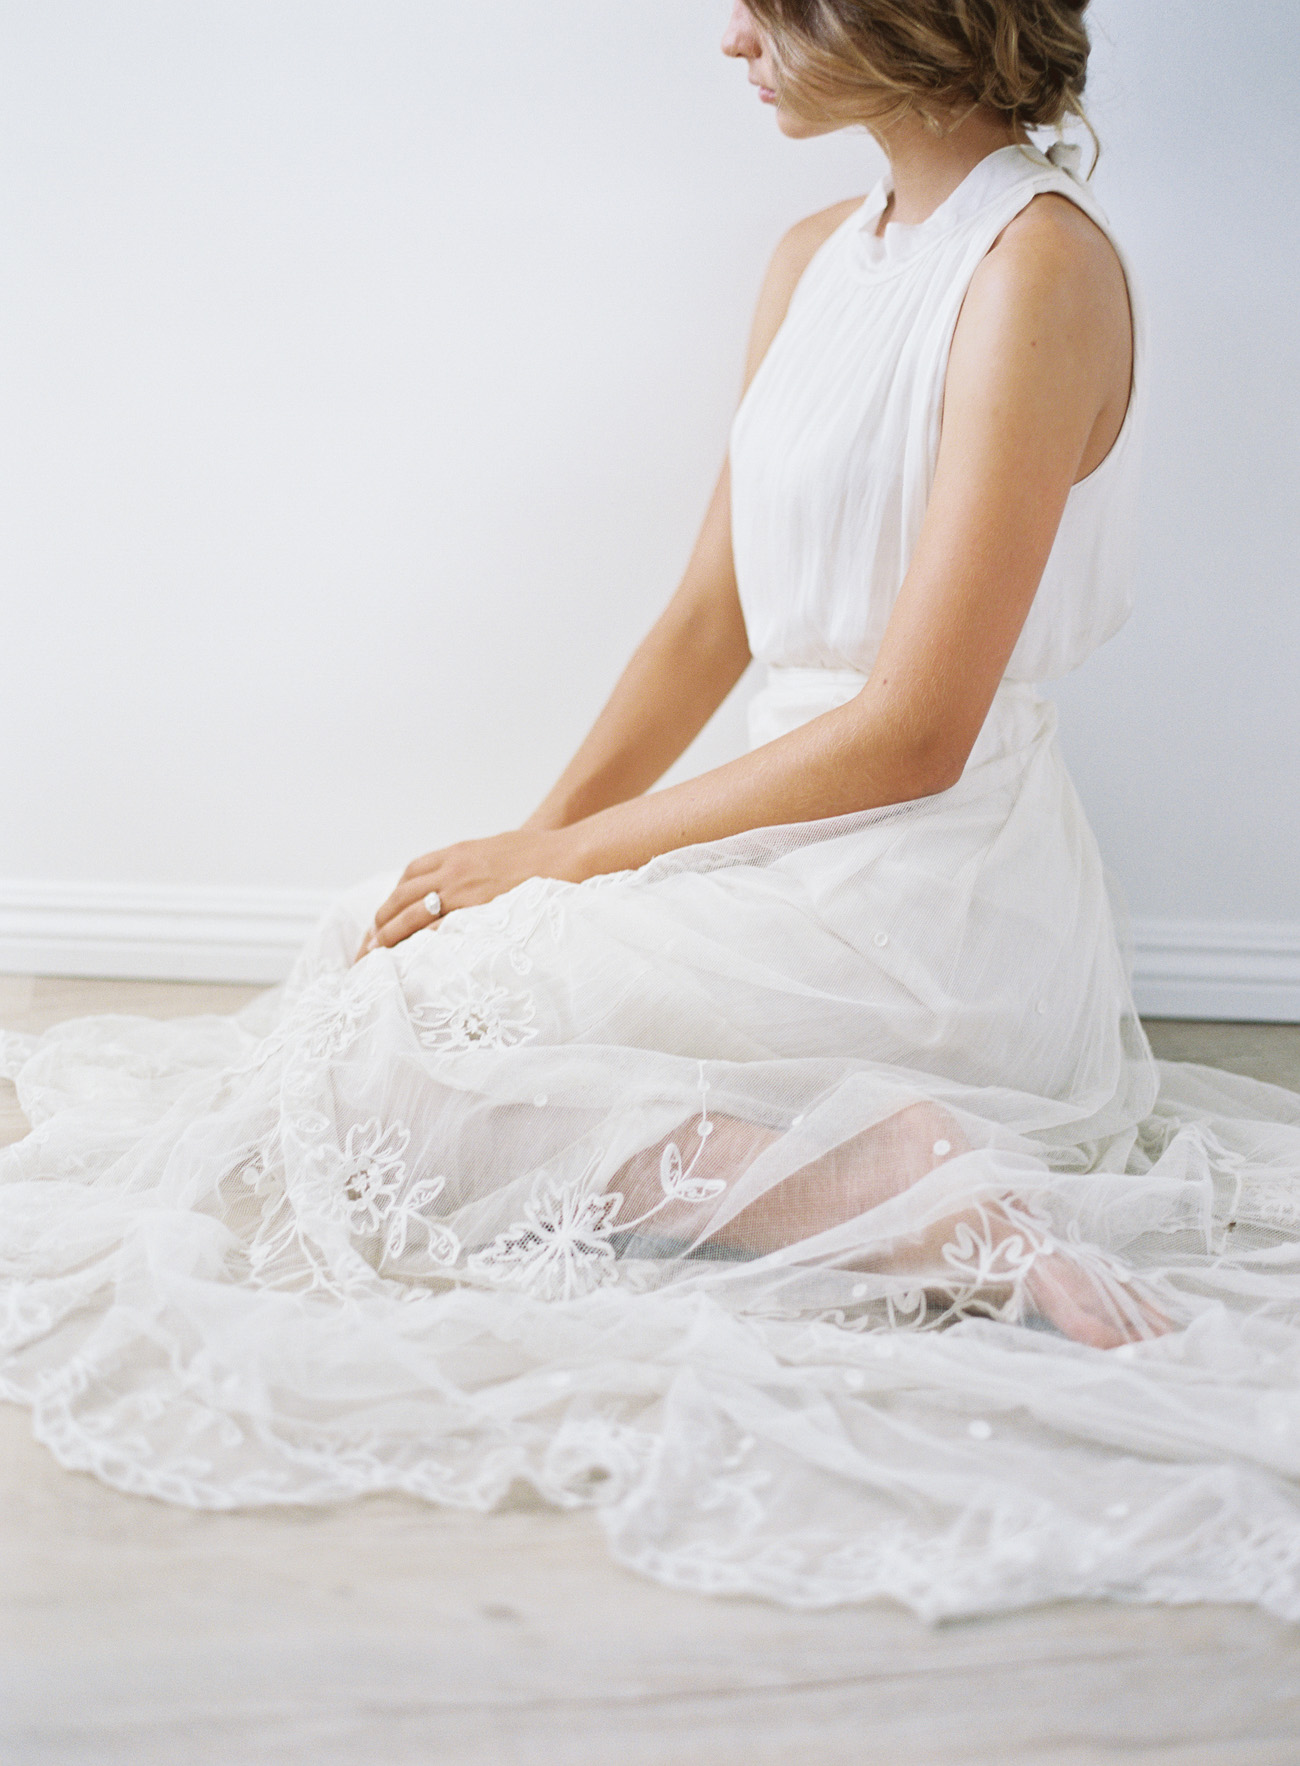 Tambour lace wedding dress